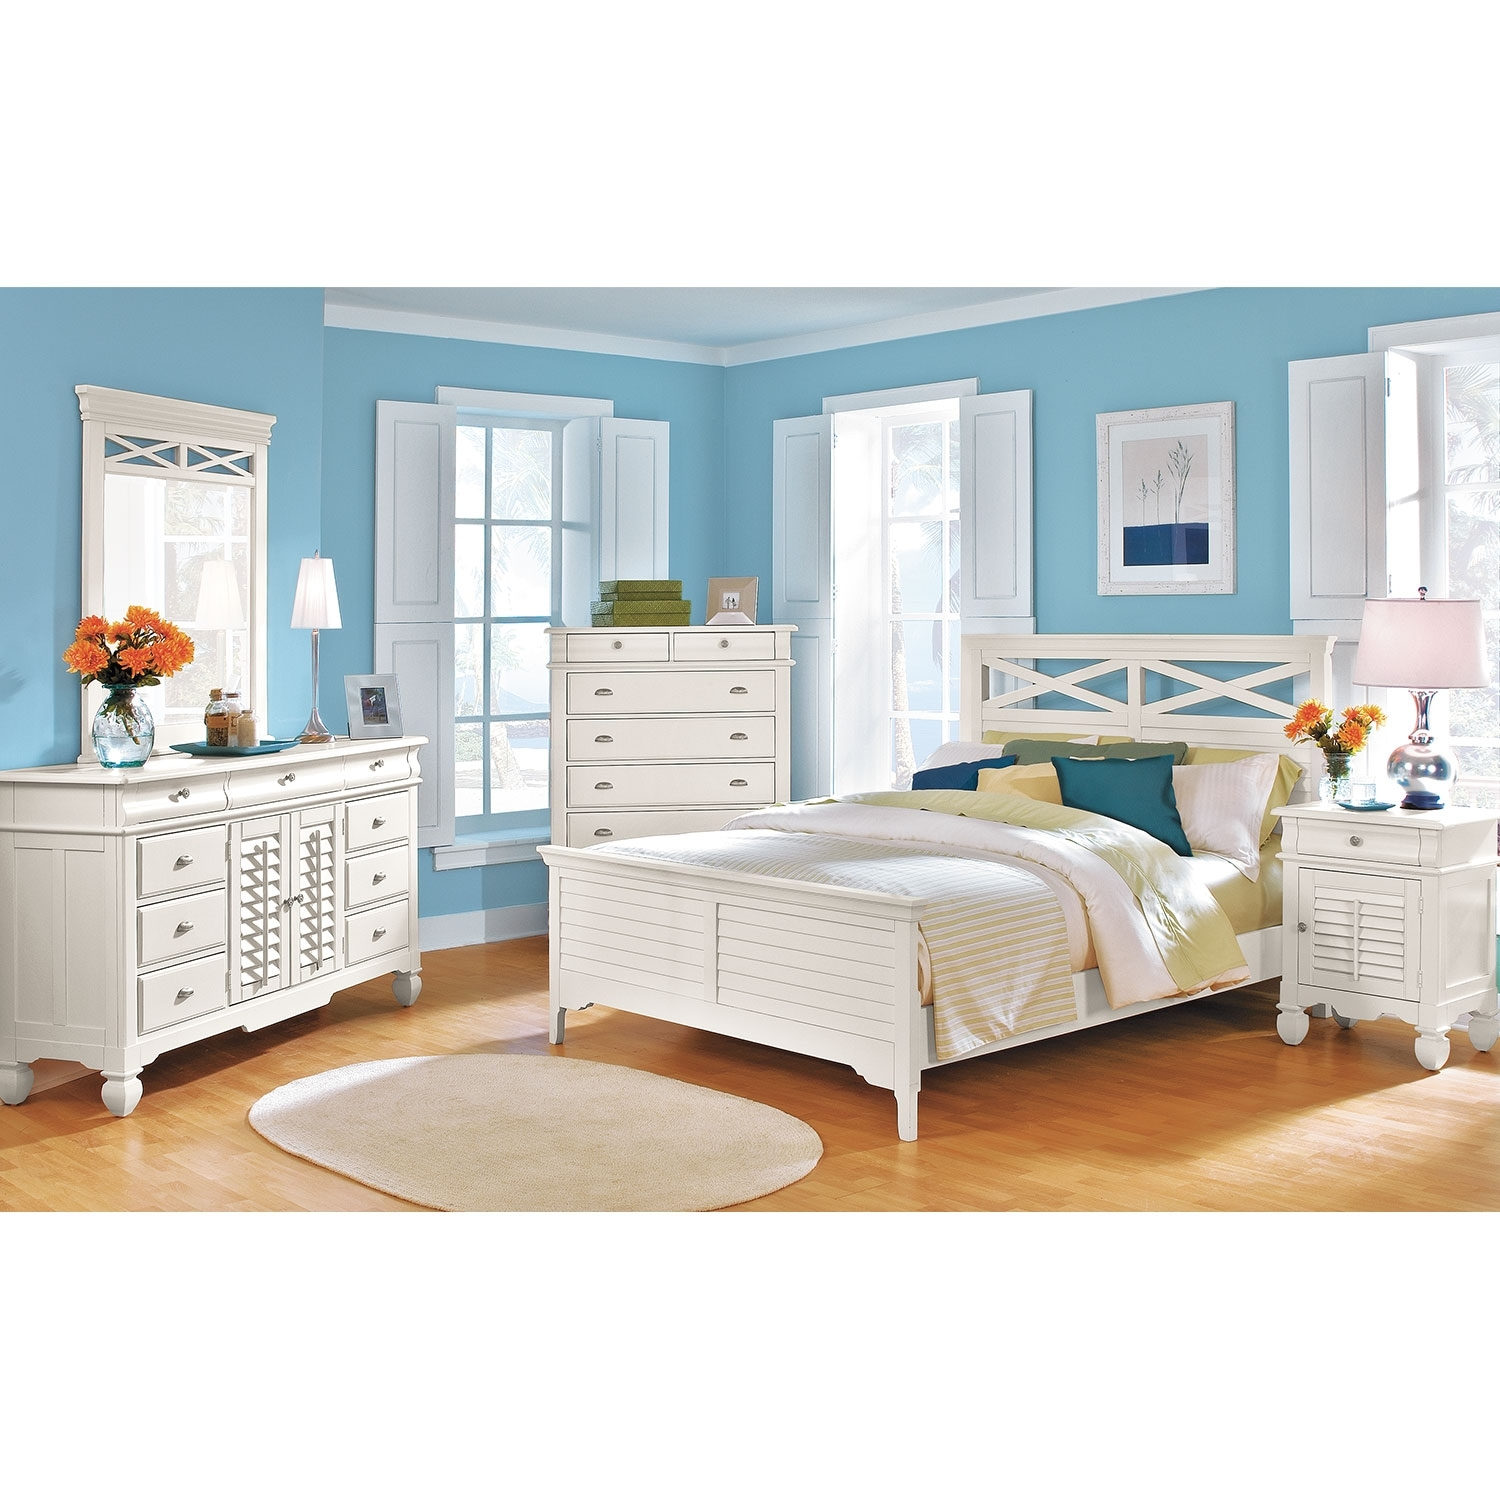 Plantation Cove Door Nightstand White Value City Furniture